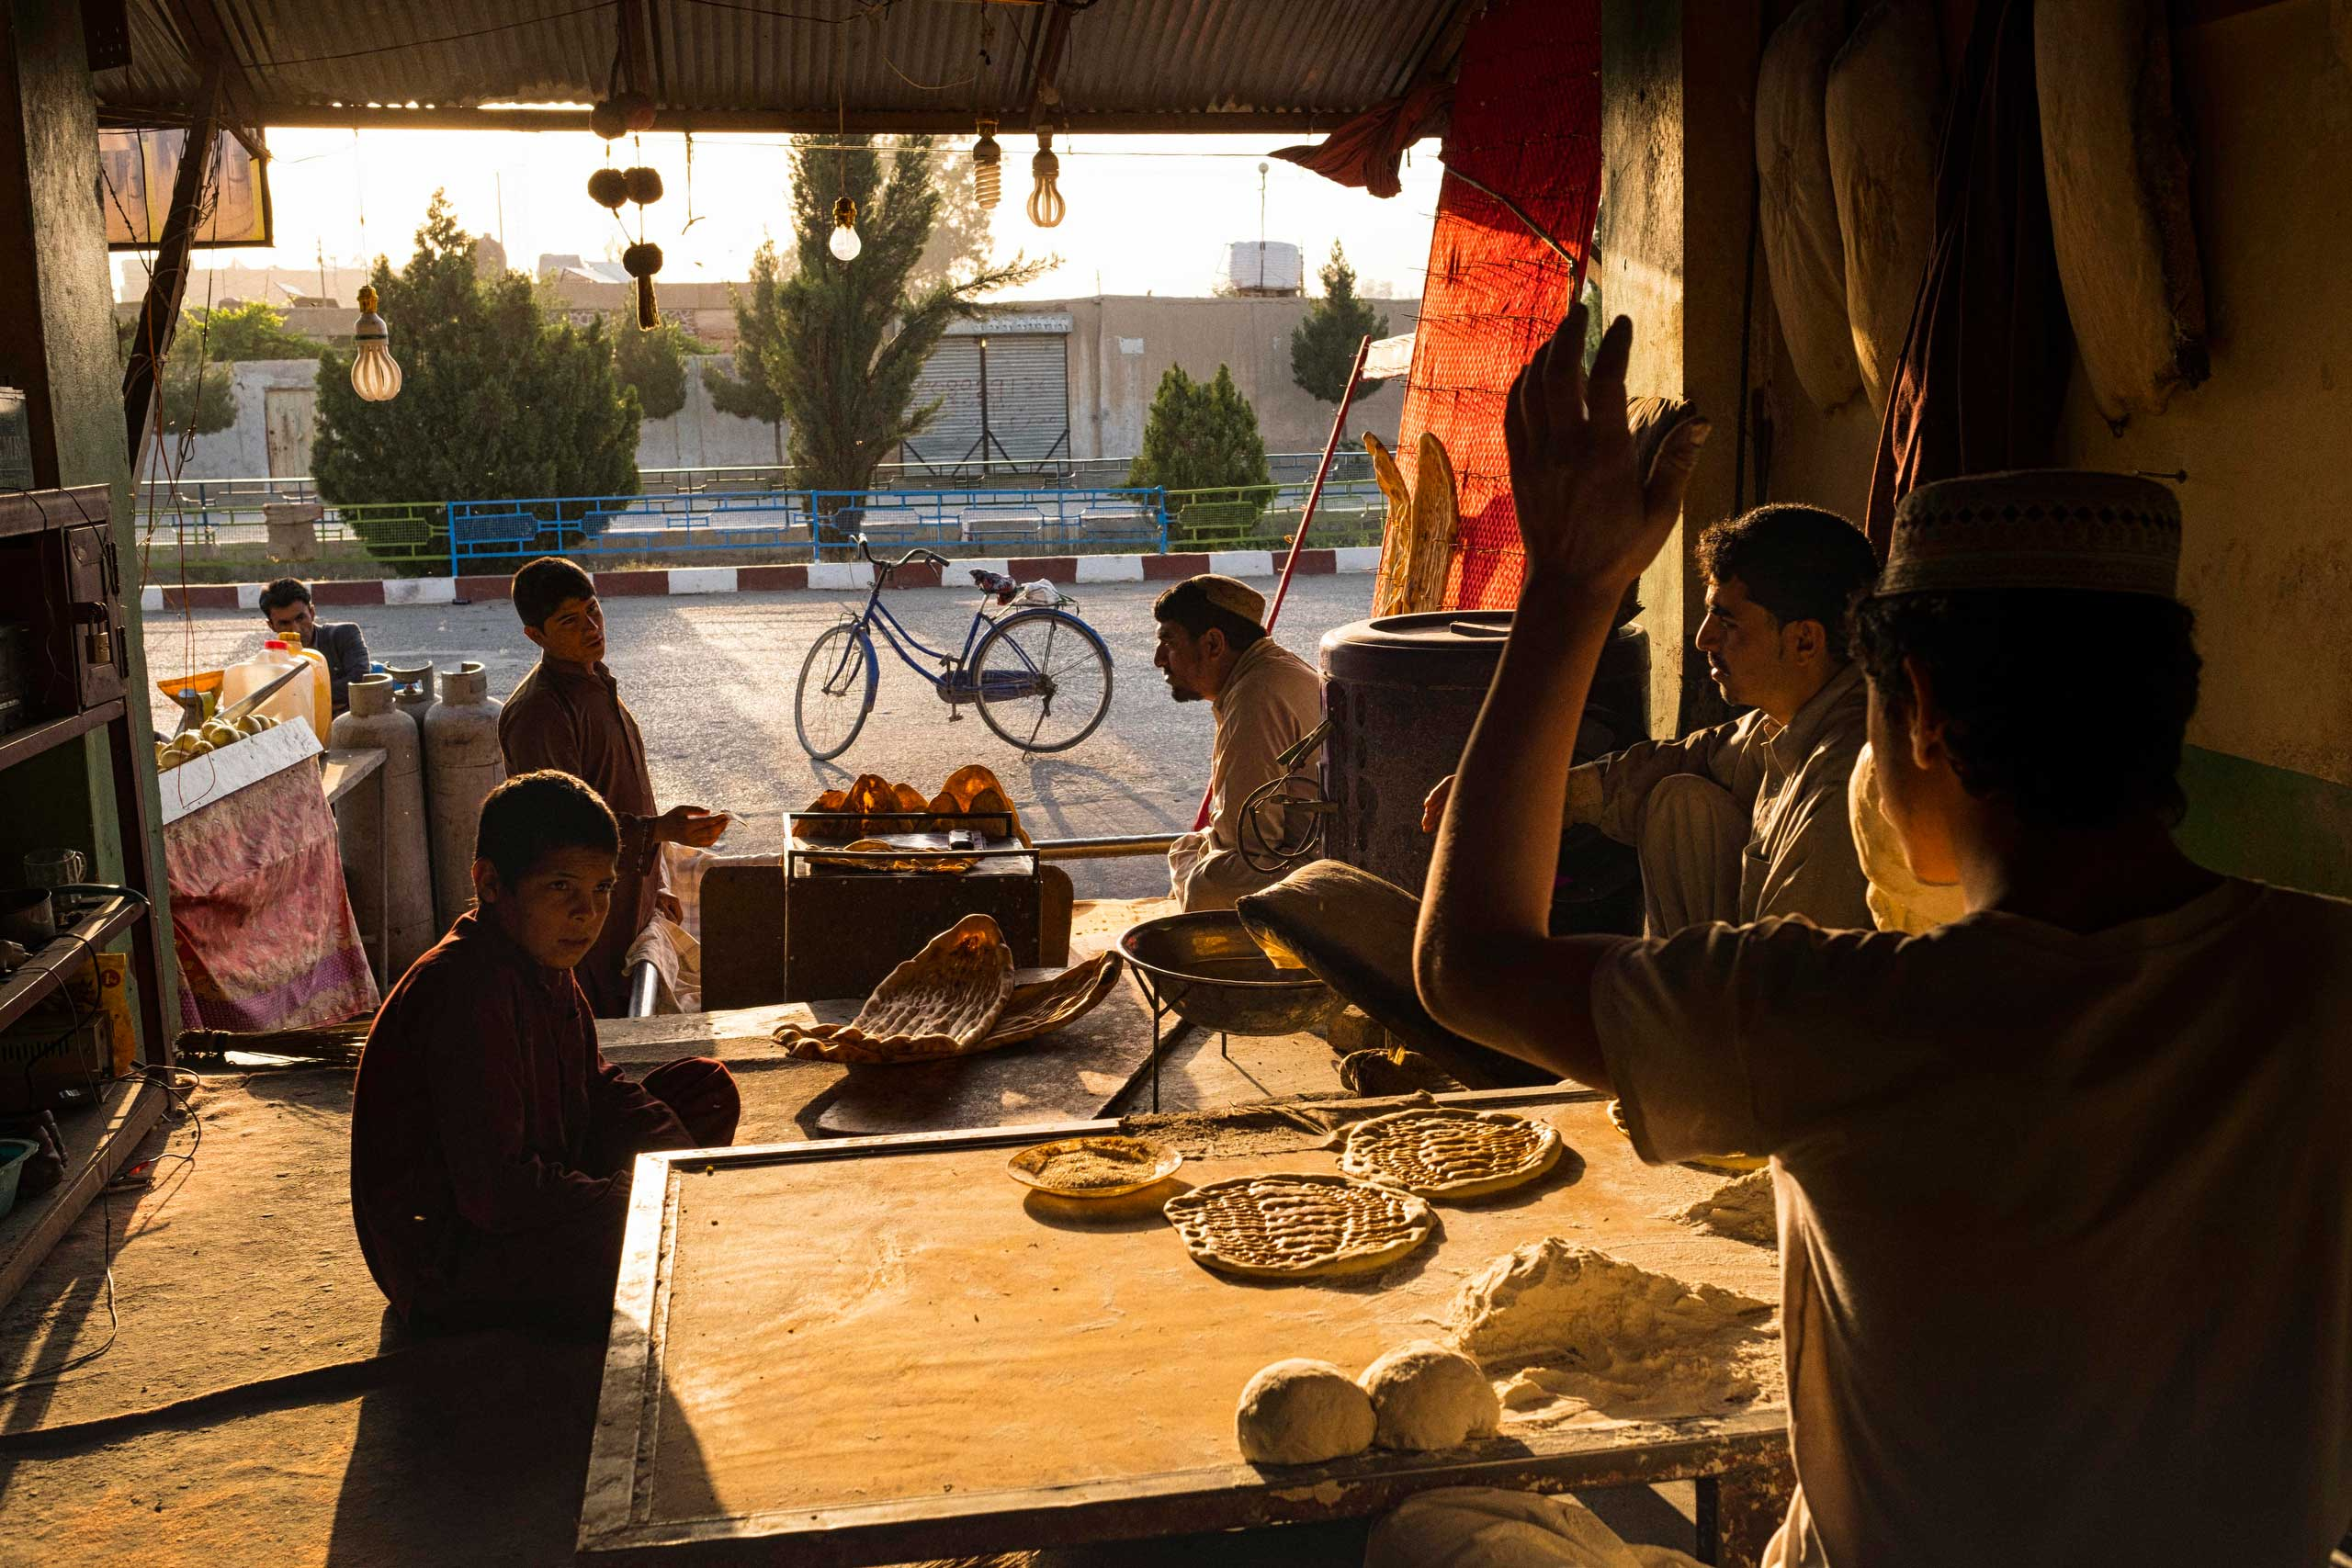 Bakers at work in at sunrise in Lashkar Gah, the capital of Helmand Province in southern Afghanistan during a period of relative calm as the region's vast poppy crop is harvested.